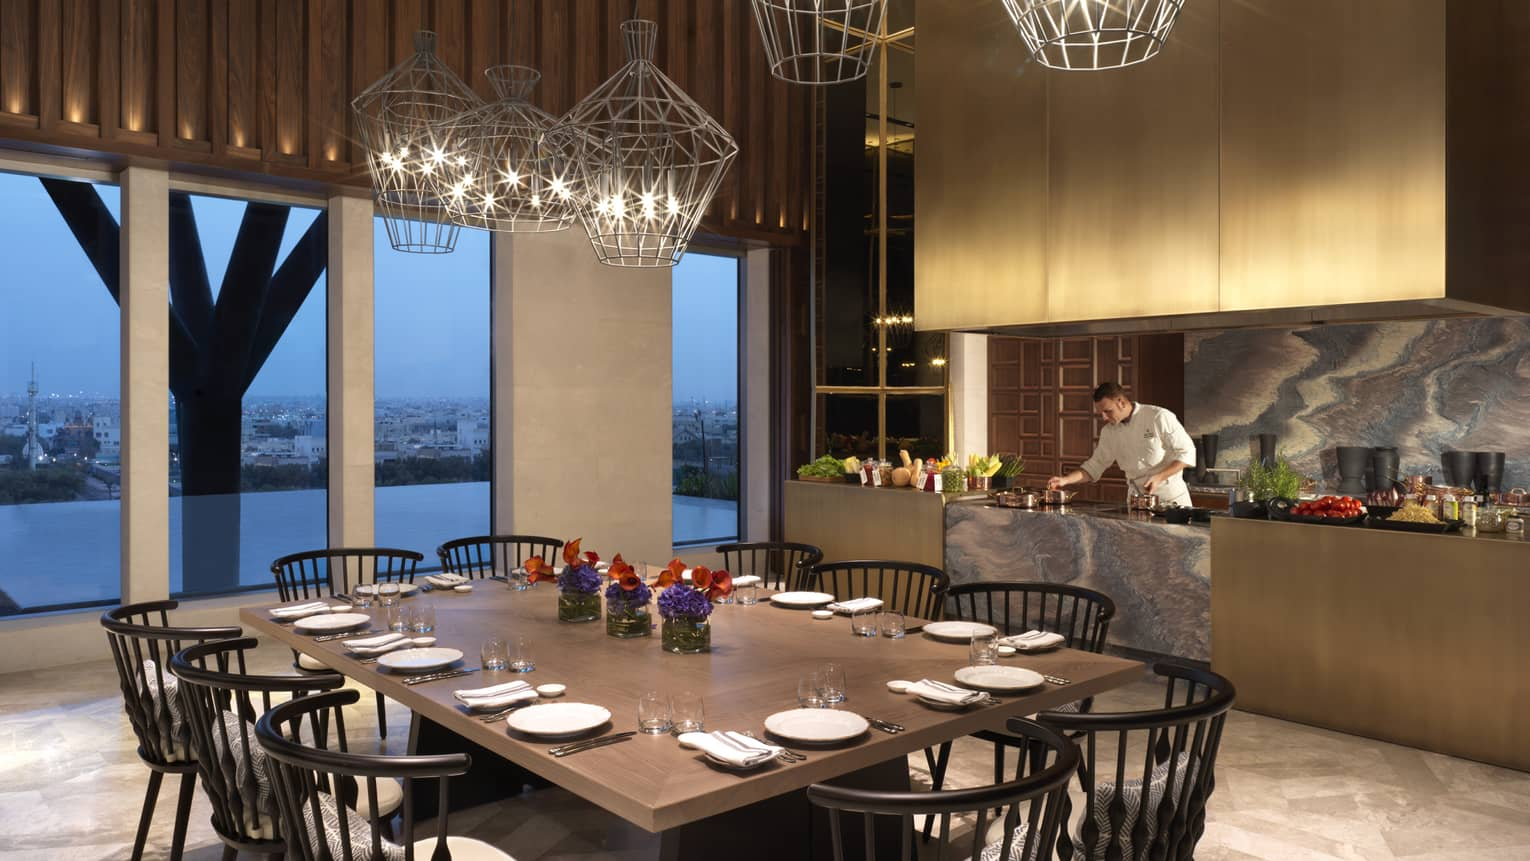 Large 10-person dining table under modern geometric wire lights, beside window and chef at marble bar